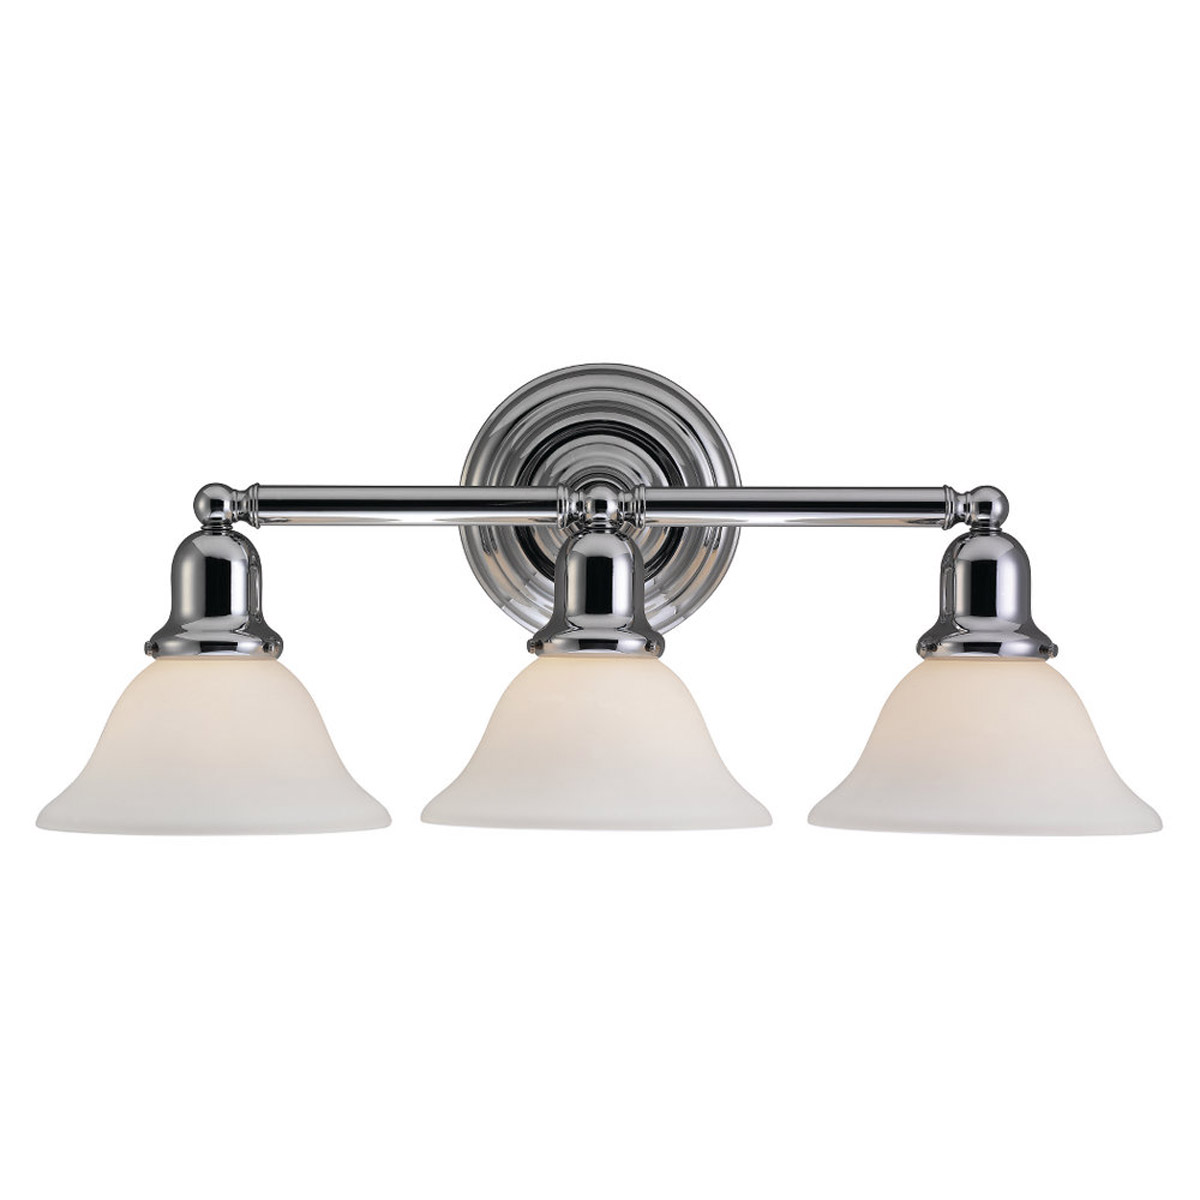 Sea Gull Lighting Sussex 3 Light Bath Vanity in Chrome 44062-05 photo